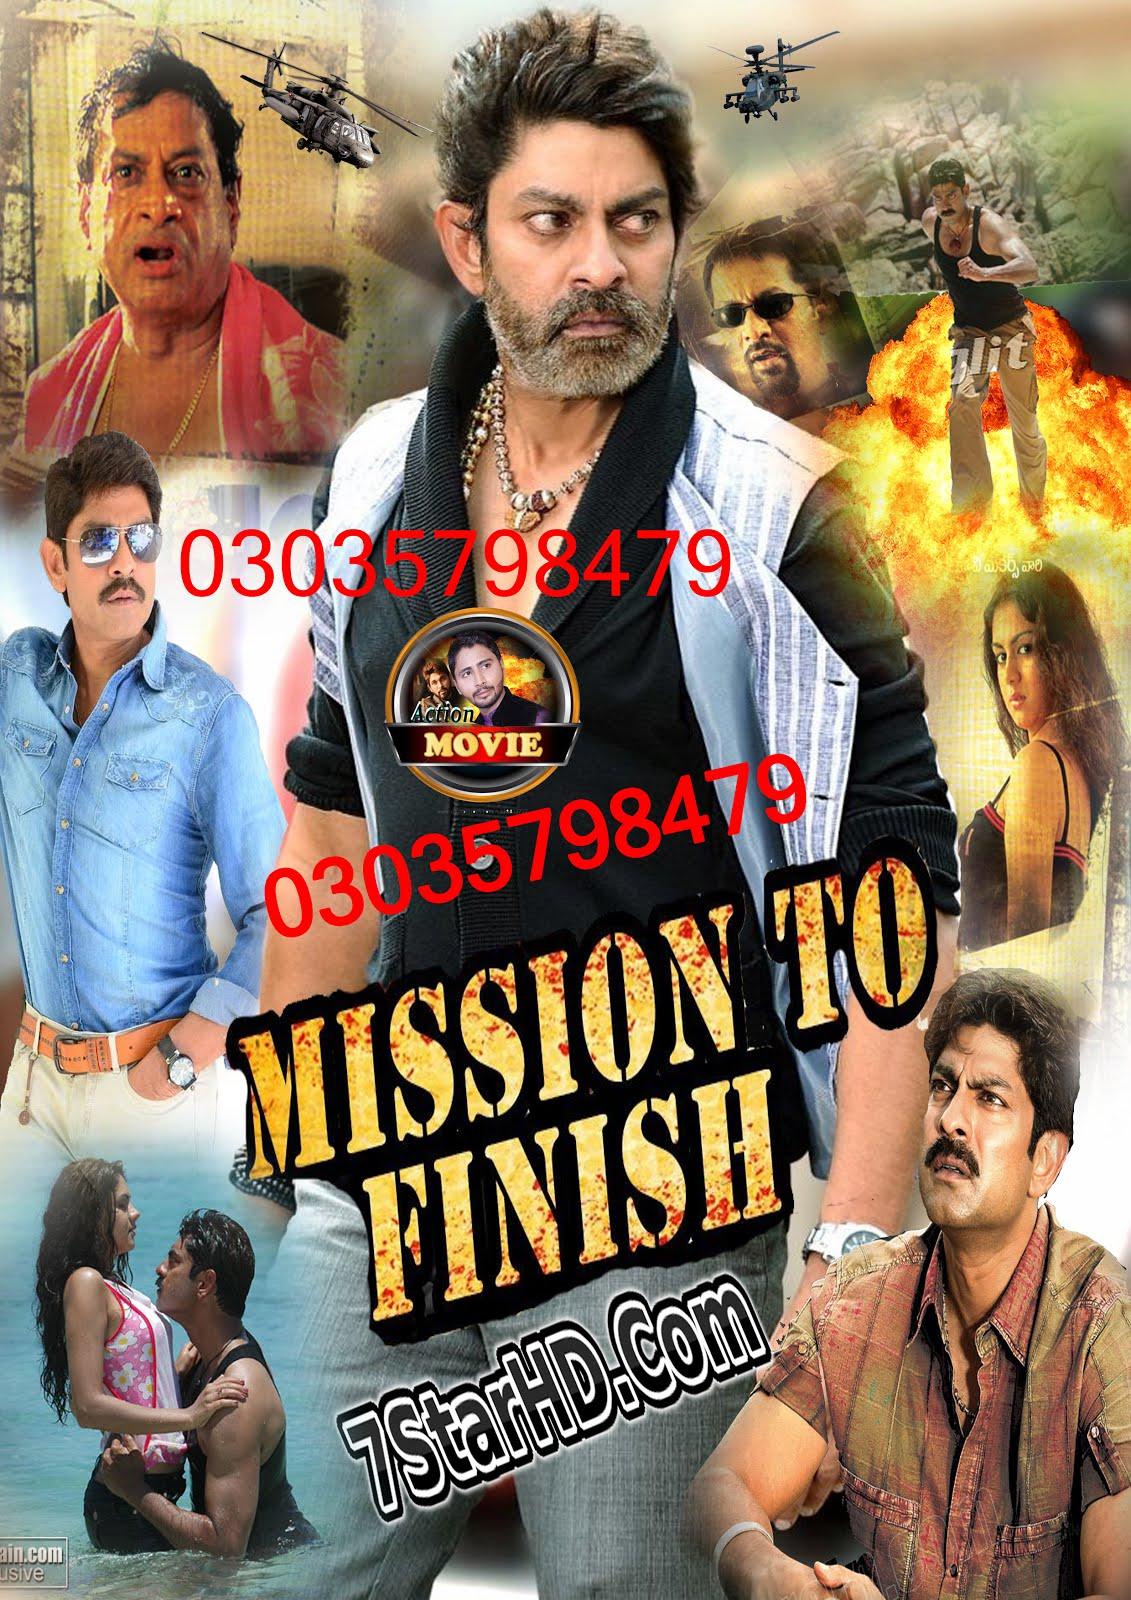 Mission To Finish Corruption (Samanyudu) 2018 Hindi Dubbed 400MB WEBRip 480p x264